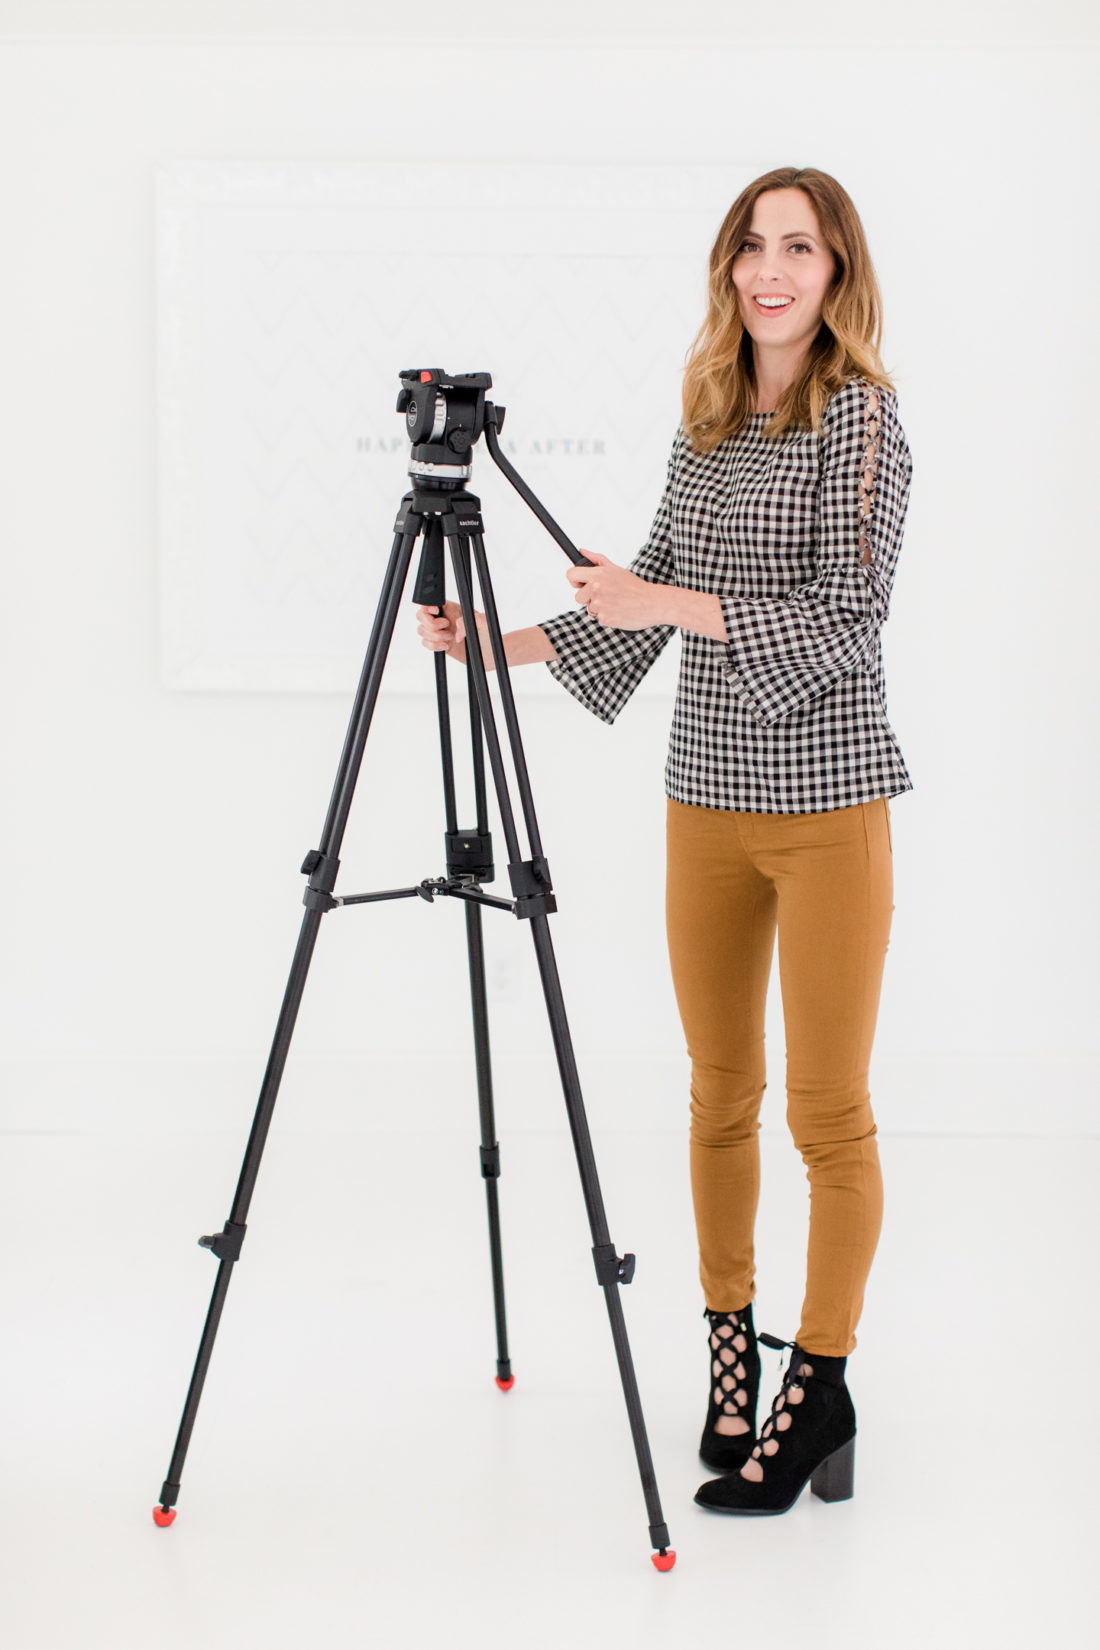 Eva Amurri Martino stands with her camera tripod in the Happily Eva After studio in Connecticut